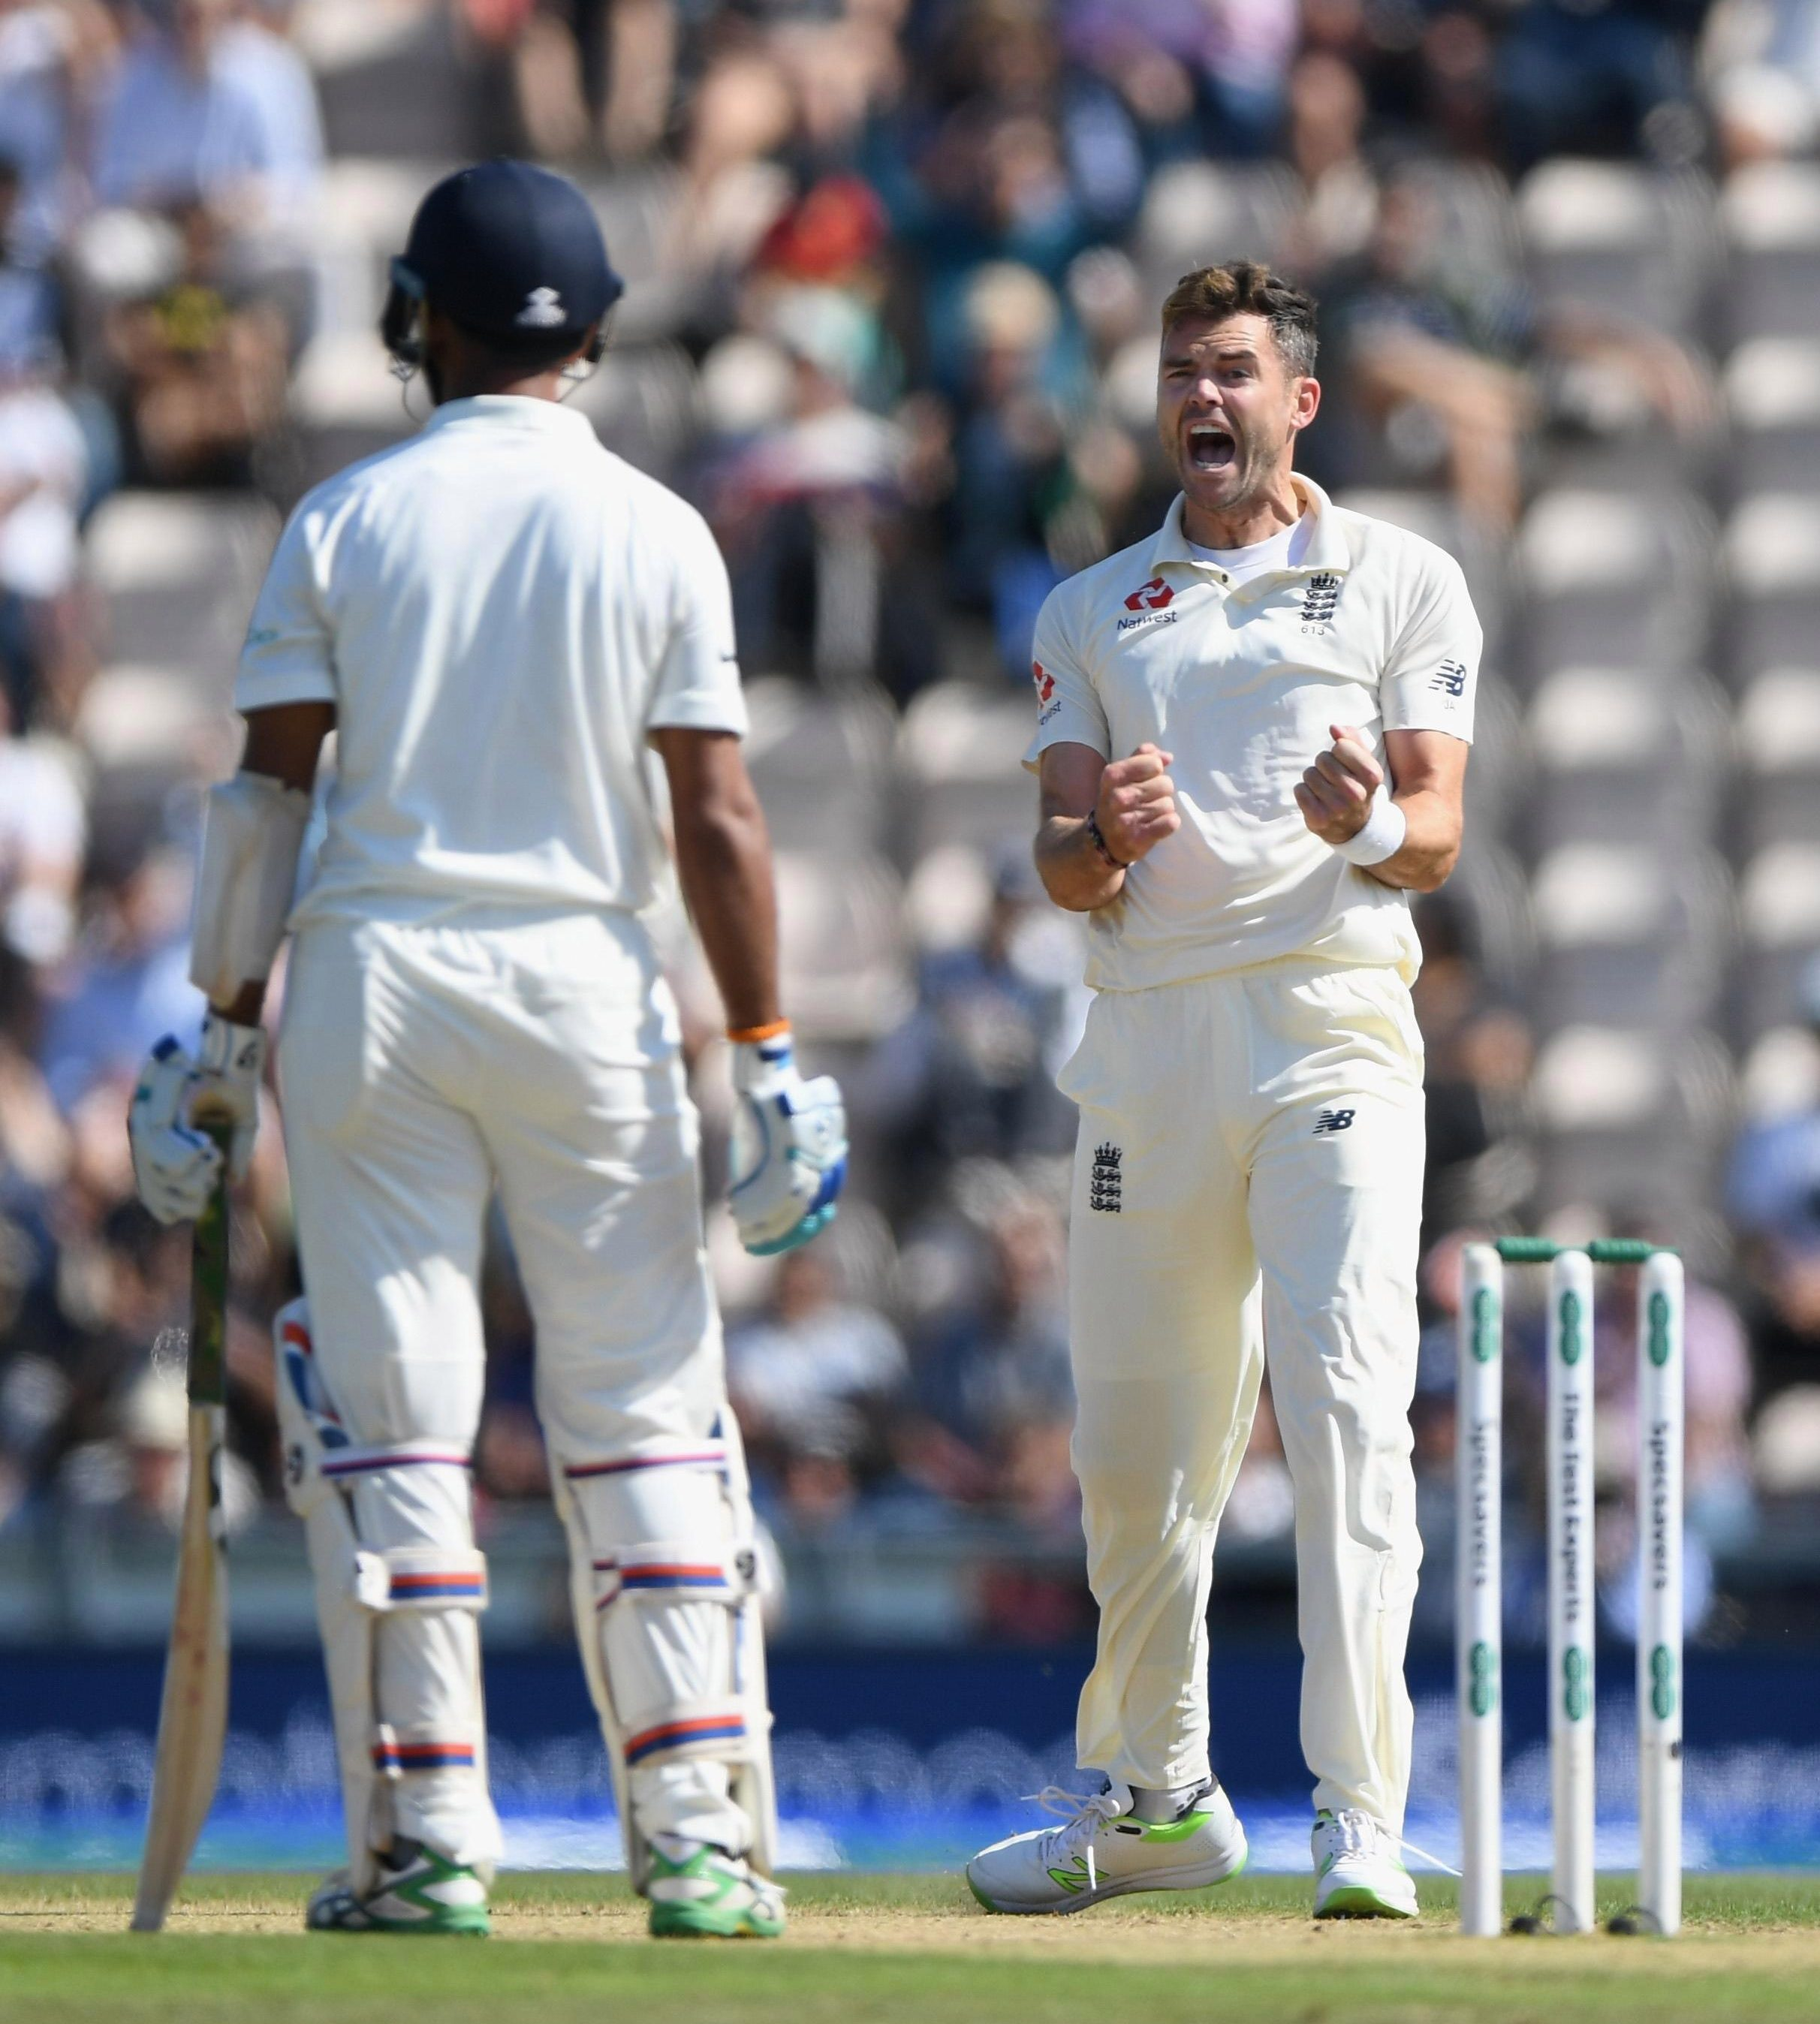 England tore through India's lower order after a stubborn fifth-wicket partnership